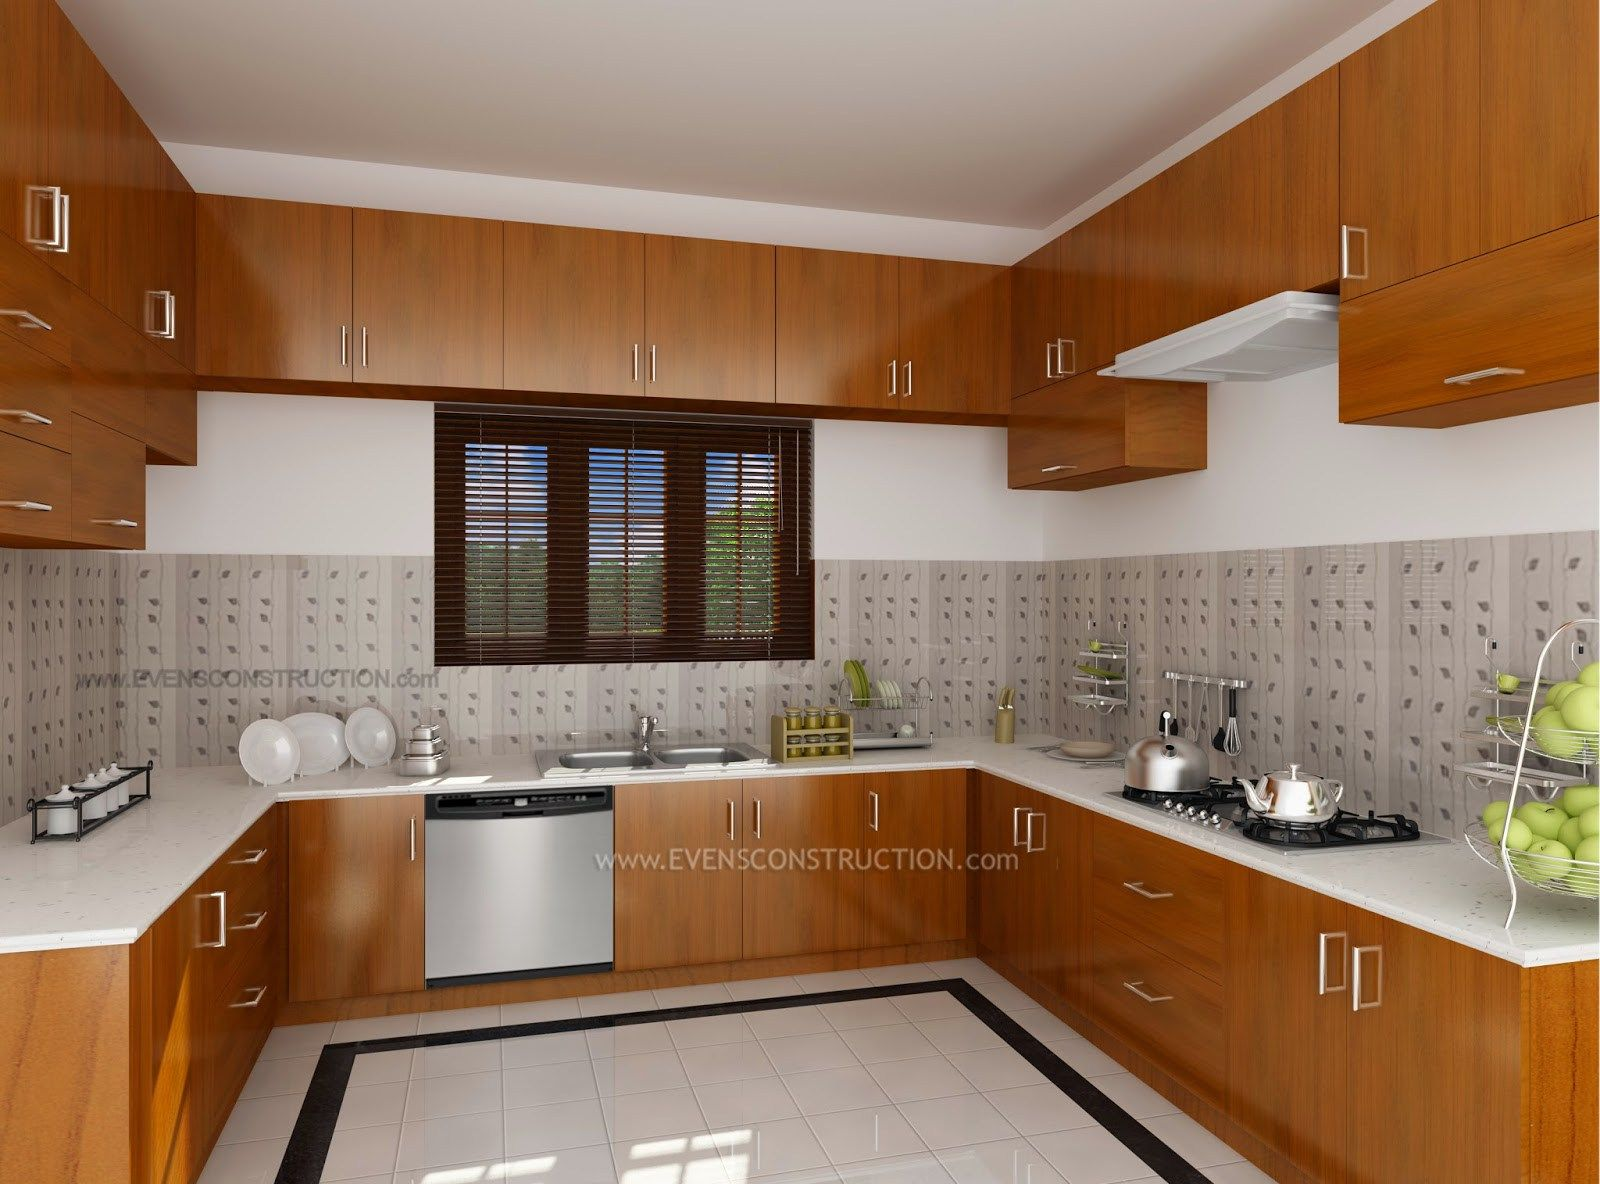 Design interior kitchen home kerala modern house kitchen for Home interior design kitchen room